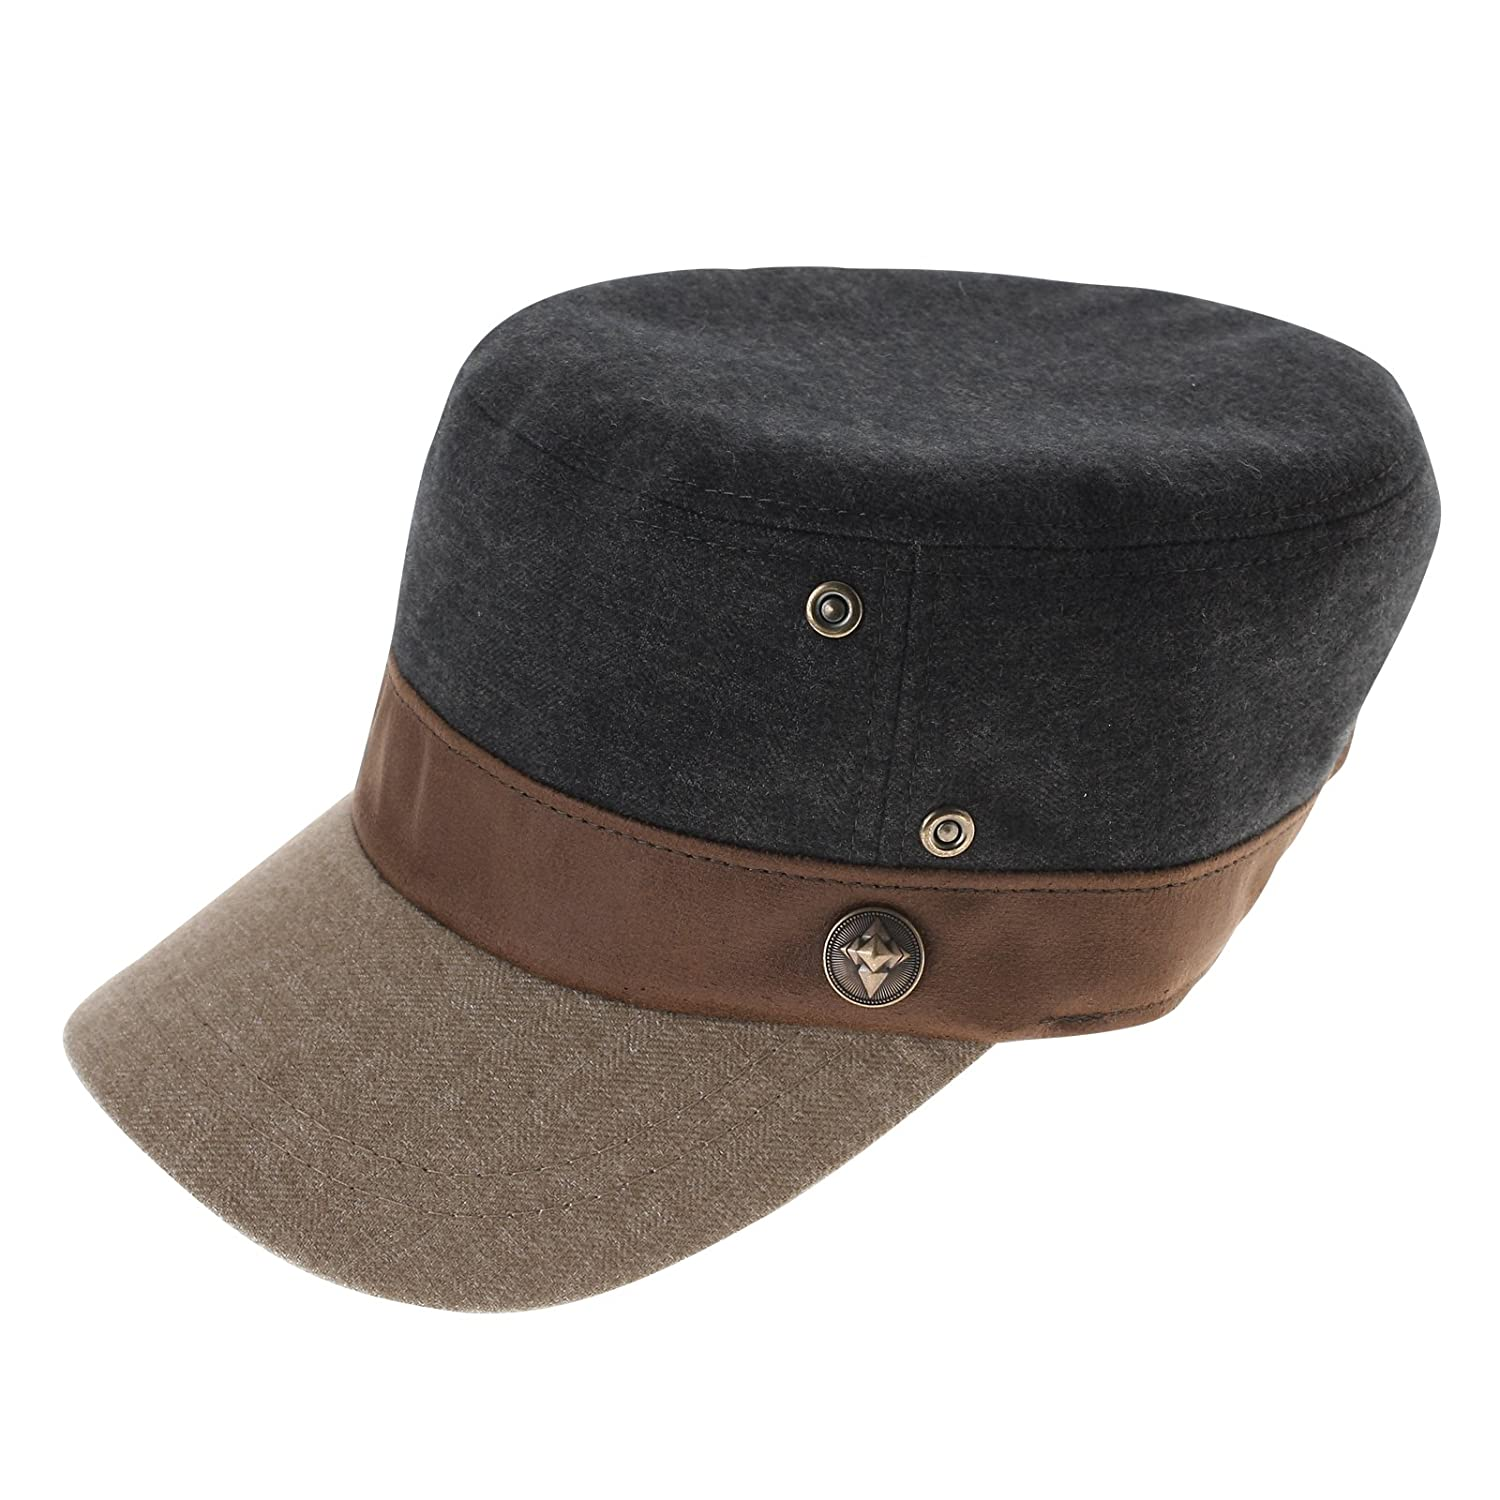 FLATSEVEN Mens Womens Designer Military Cap with Leather Band (Z109) Green   Amazon.co.uk  Clothing 69d210f901